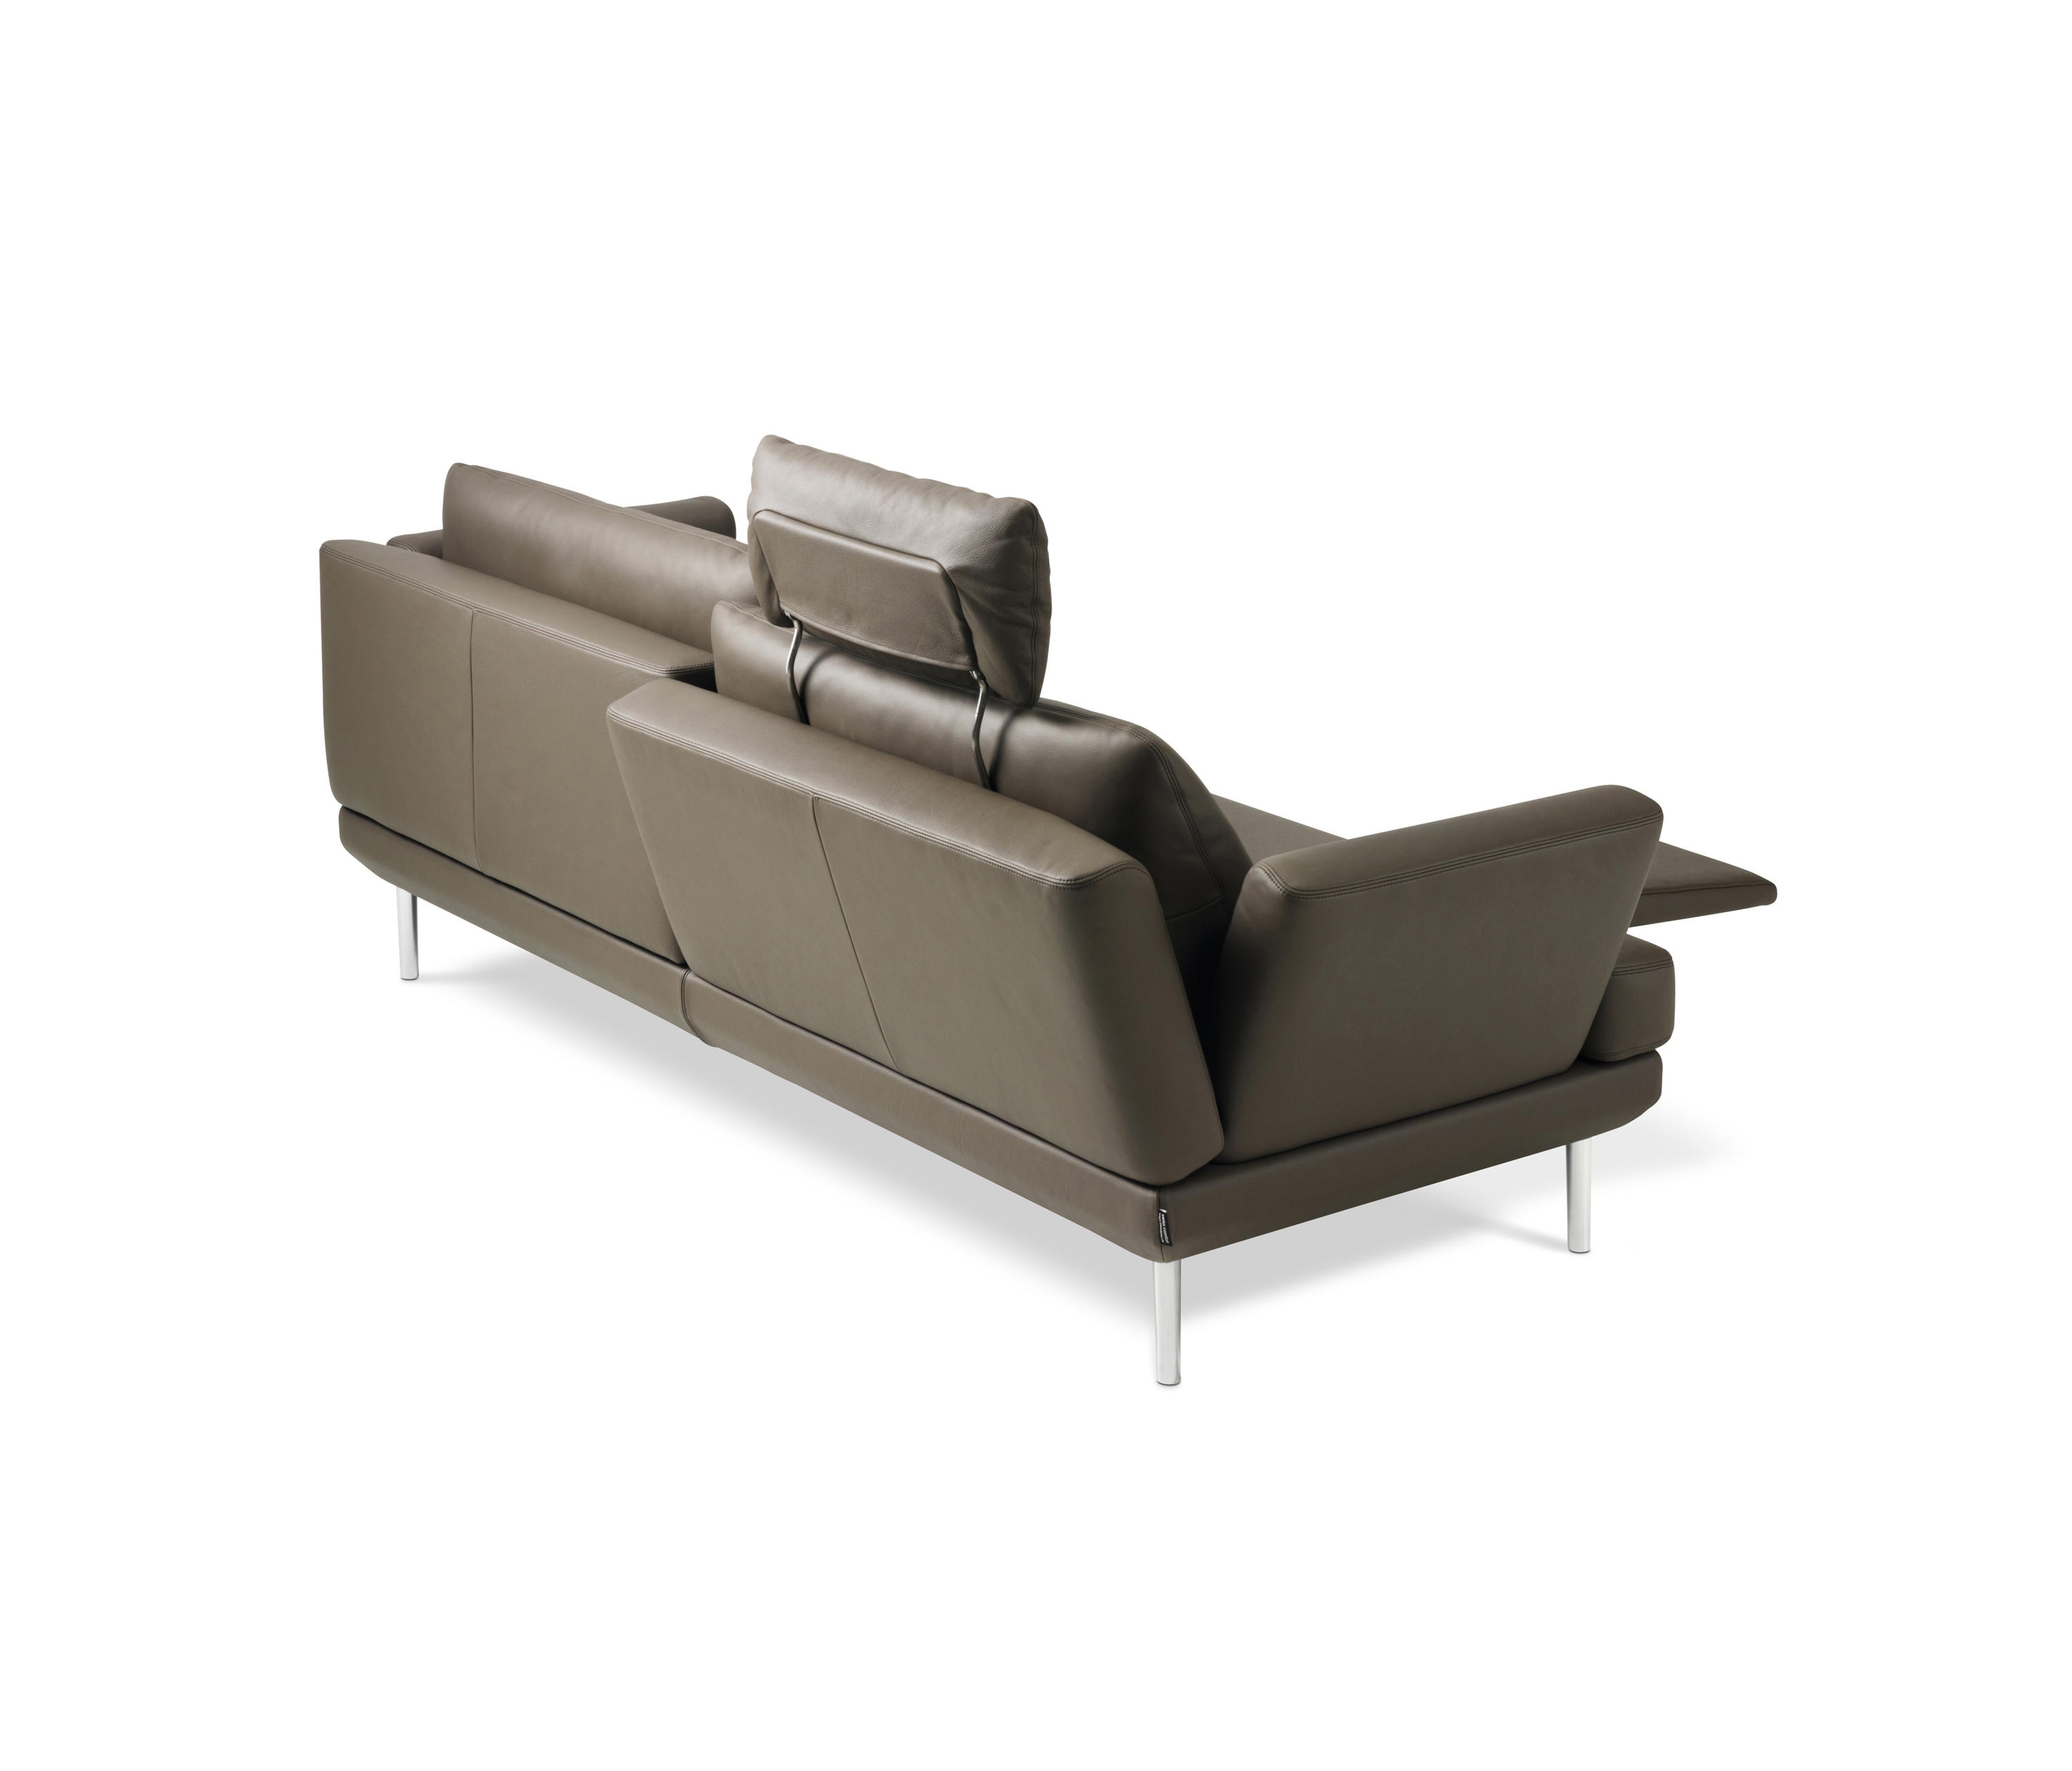 Eckcouch Taupe 1191 Liv Sofas From Intertime Architonic